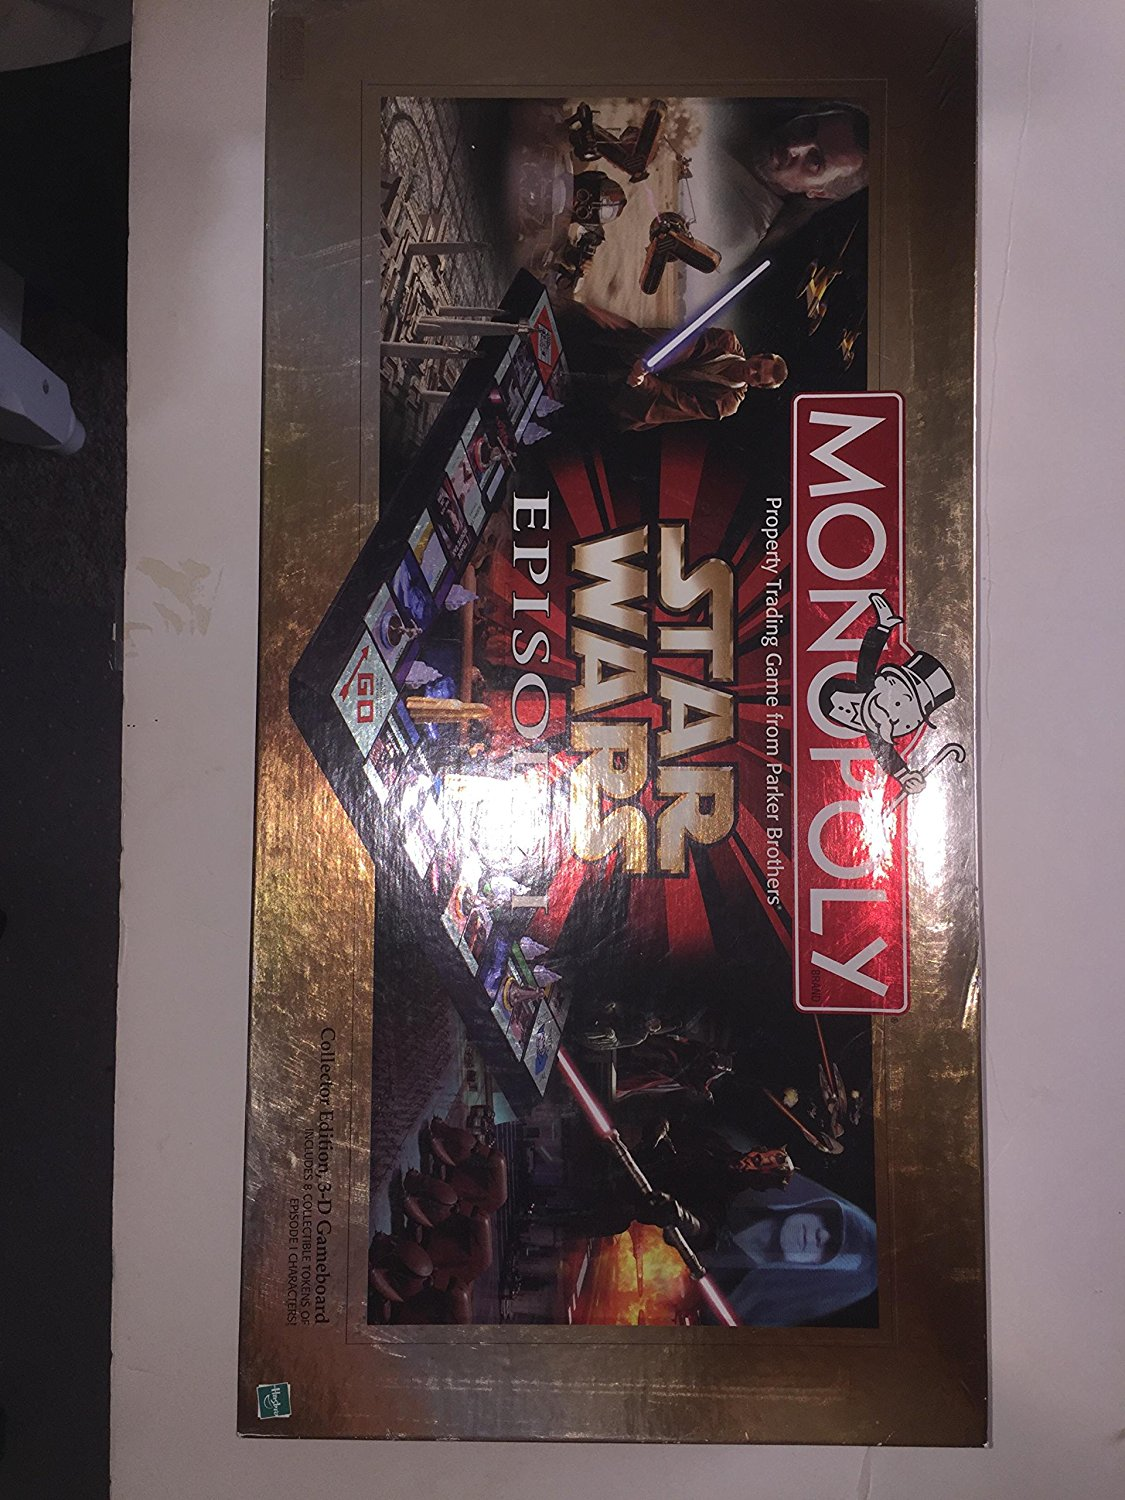 Monopoly Star Wars Episode I Board Game Made by, Monopoly in the Star Wars setting! By Hasbro by